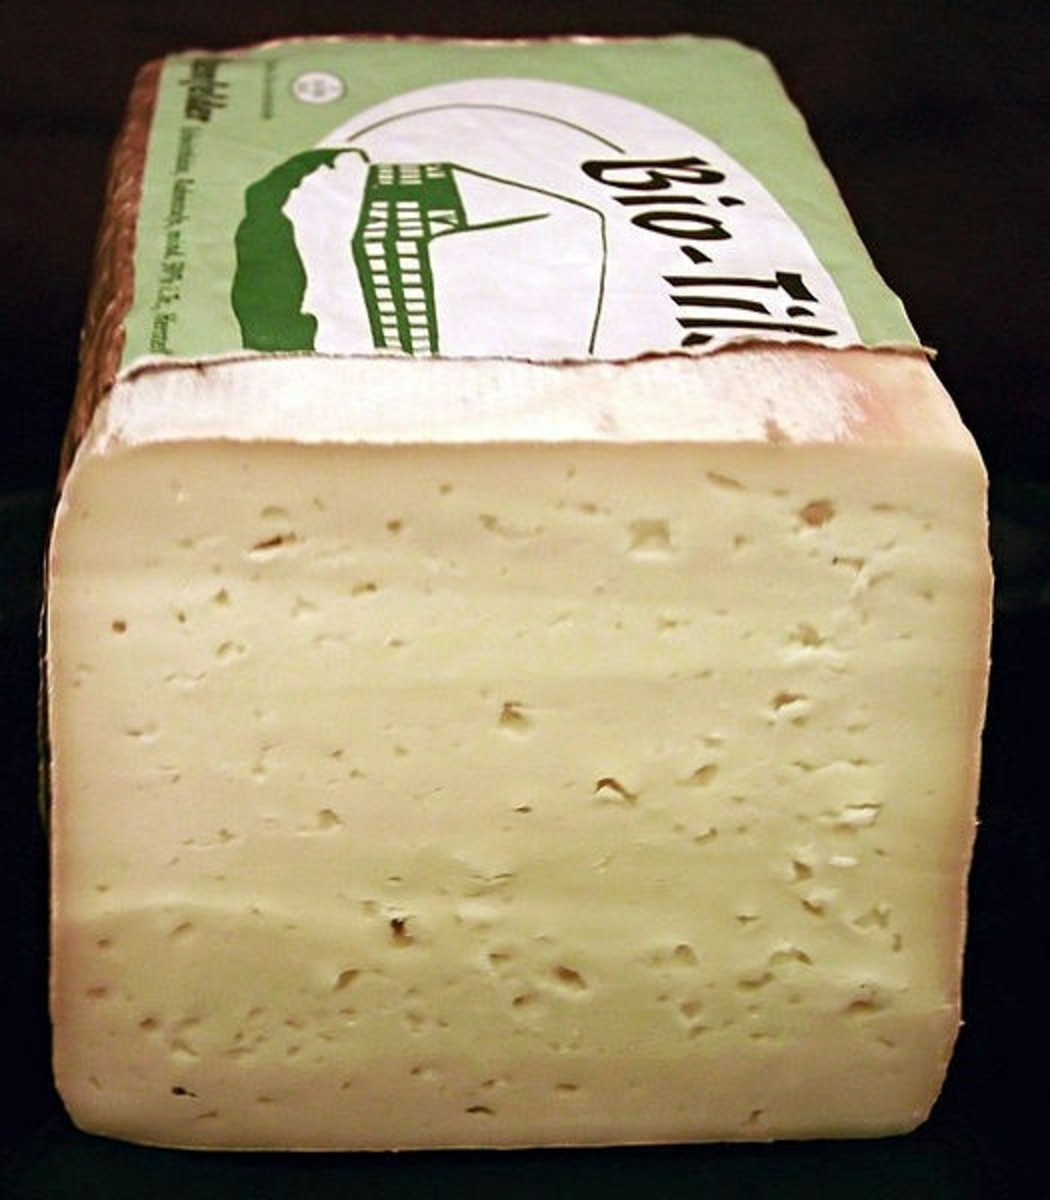 Swiss Tilsit/ Tilsiter cheese